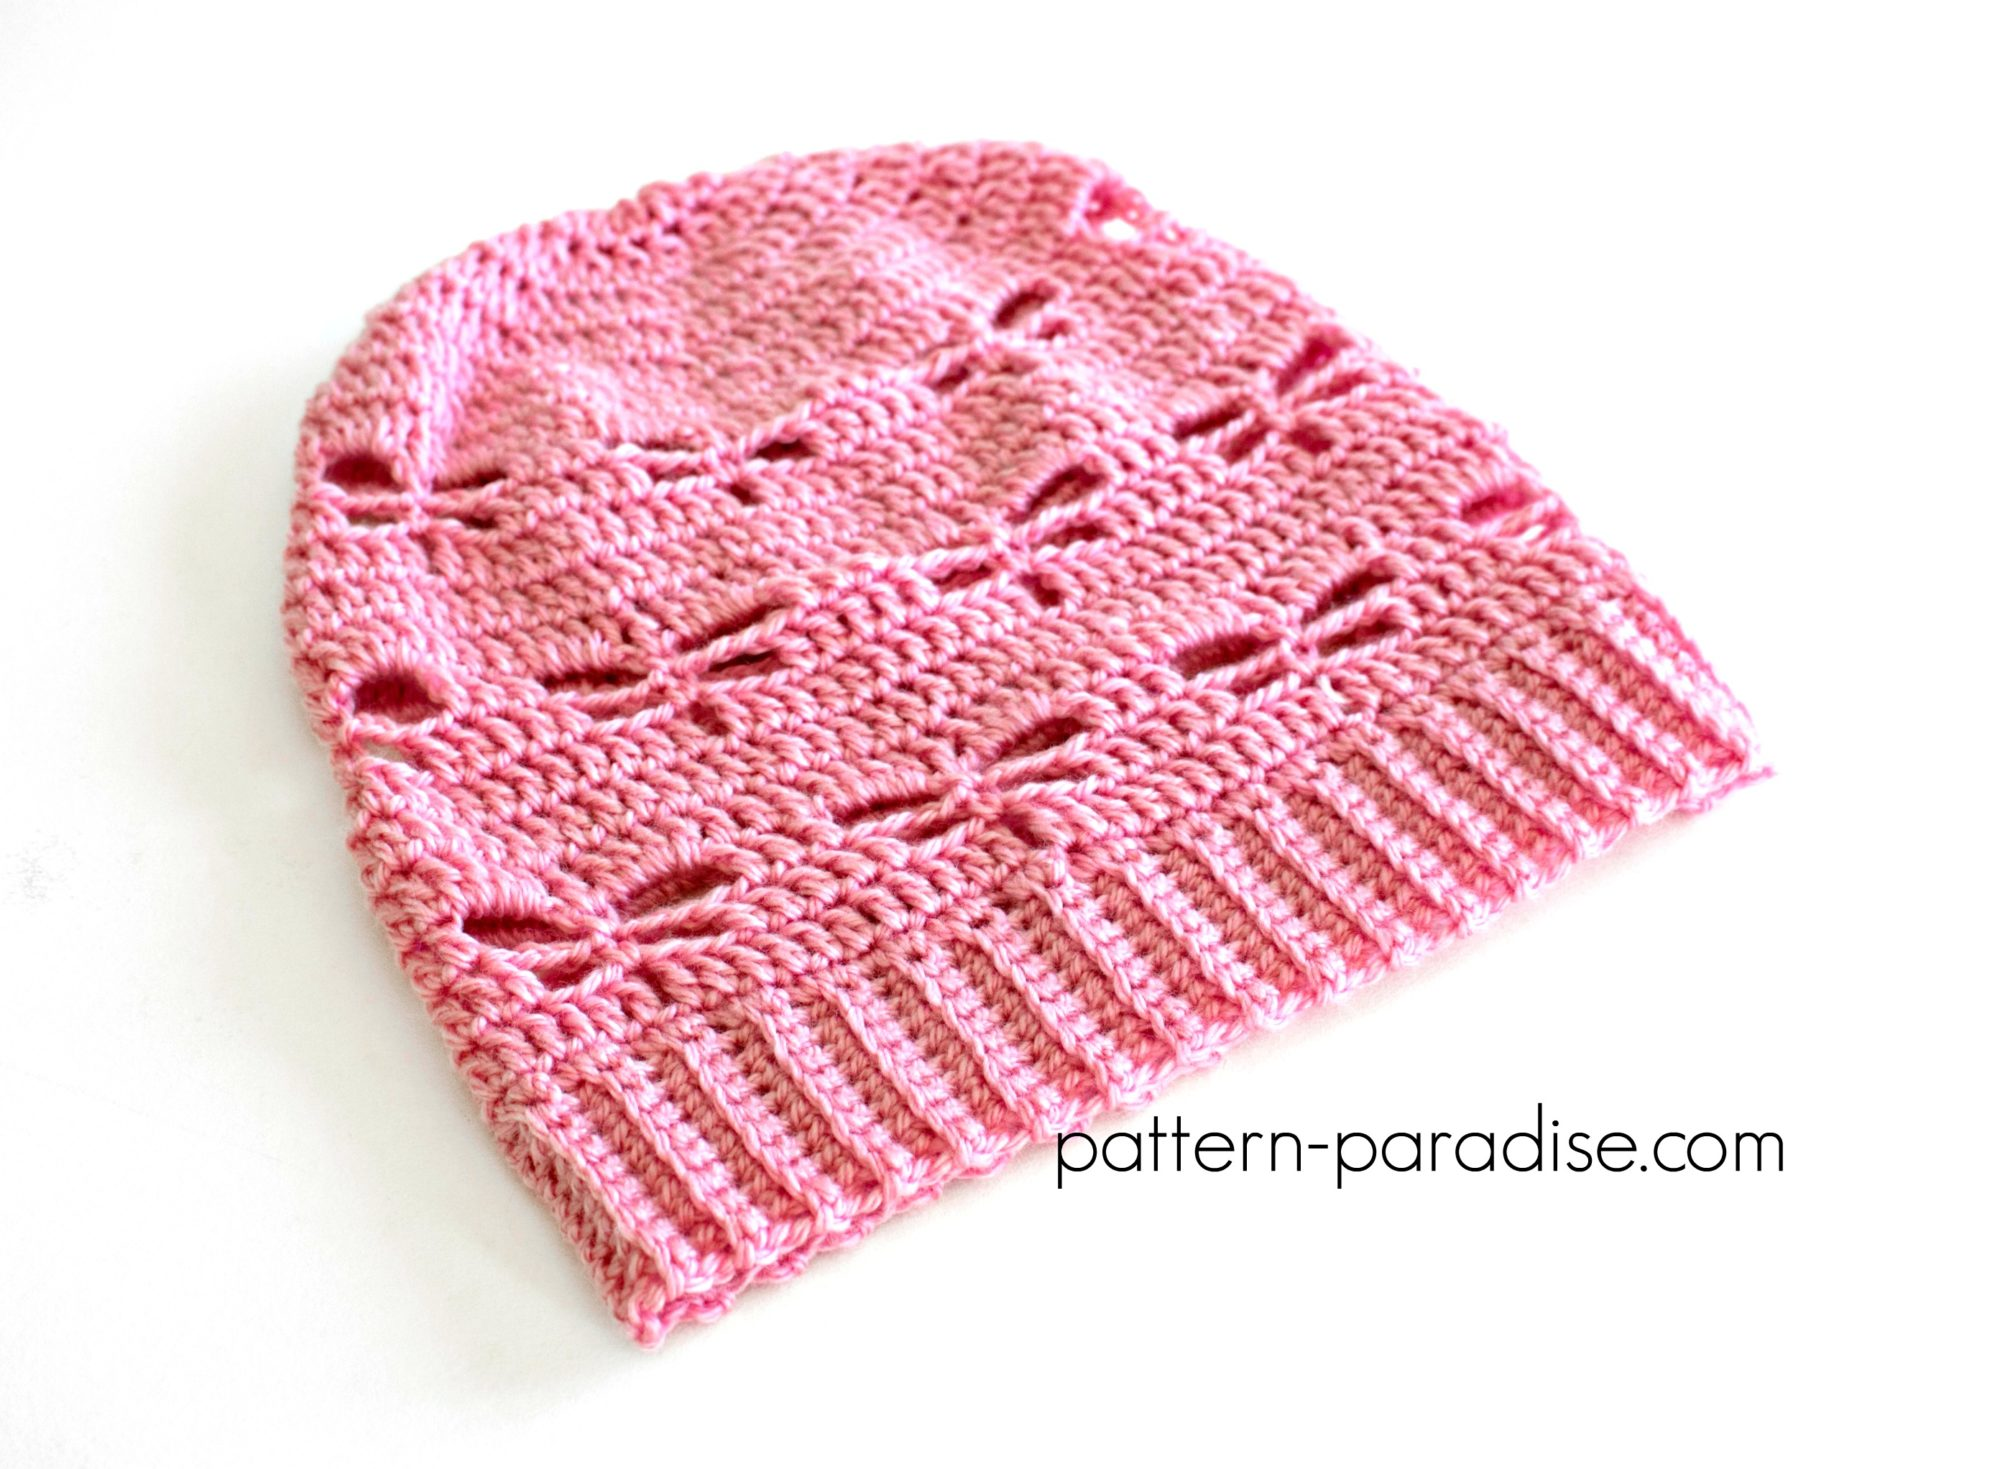 Free Crochet Pattern Dragonfly Slouchy Hat Paradise Doily With Butterflies Circular